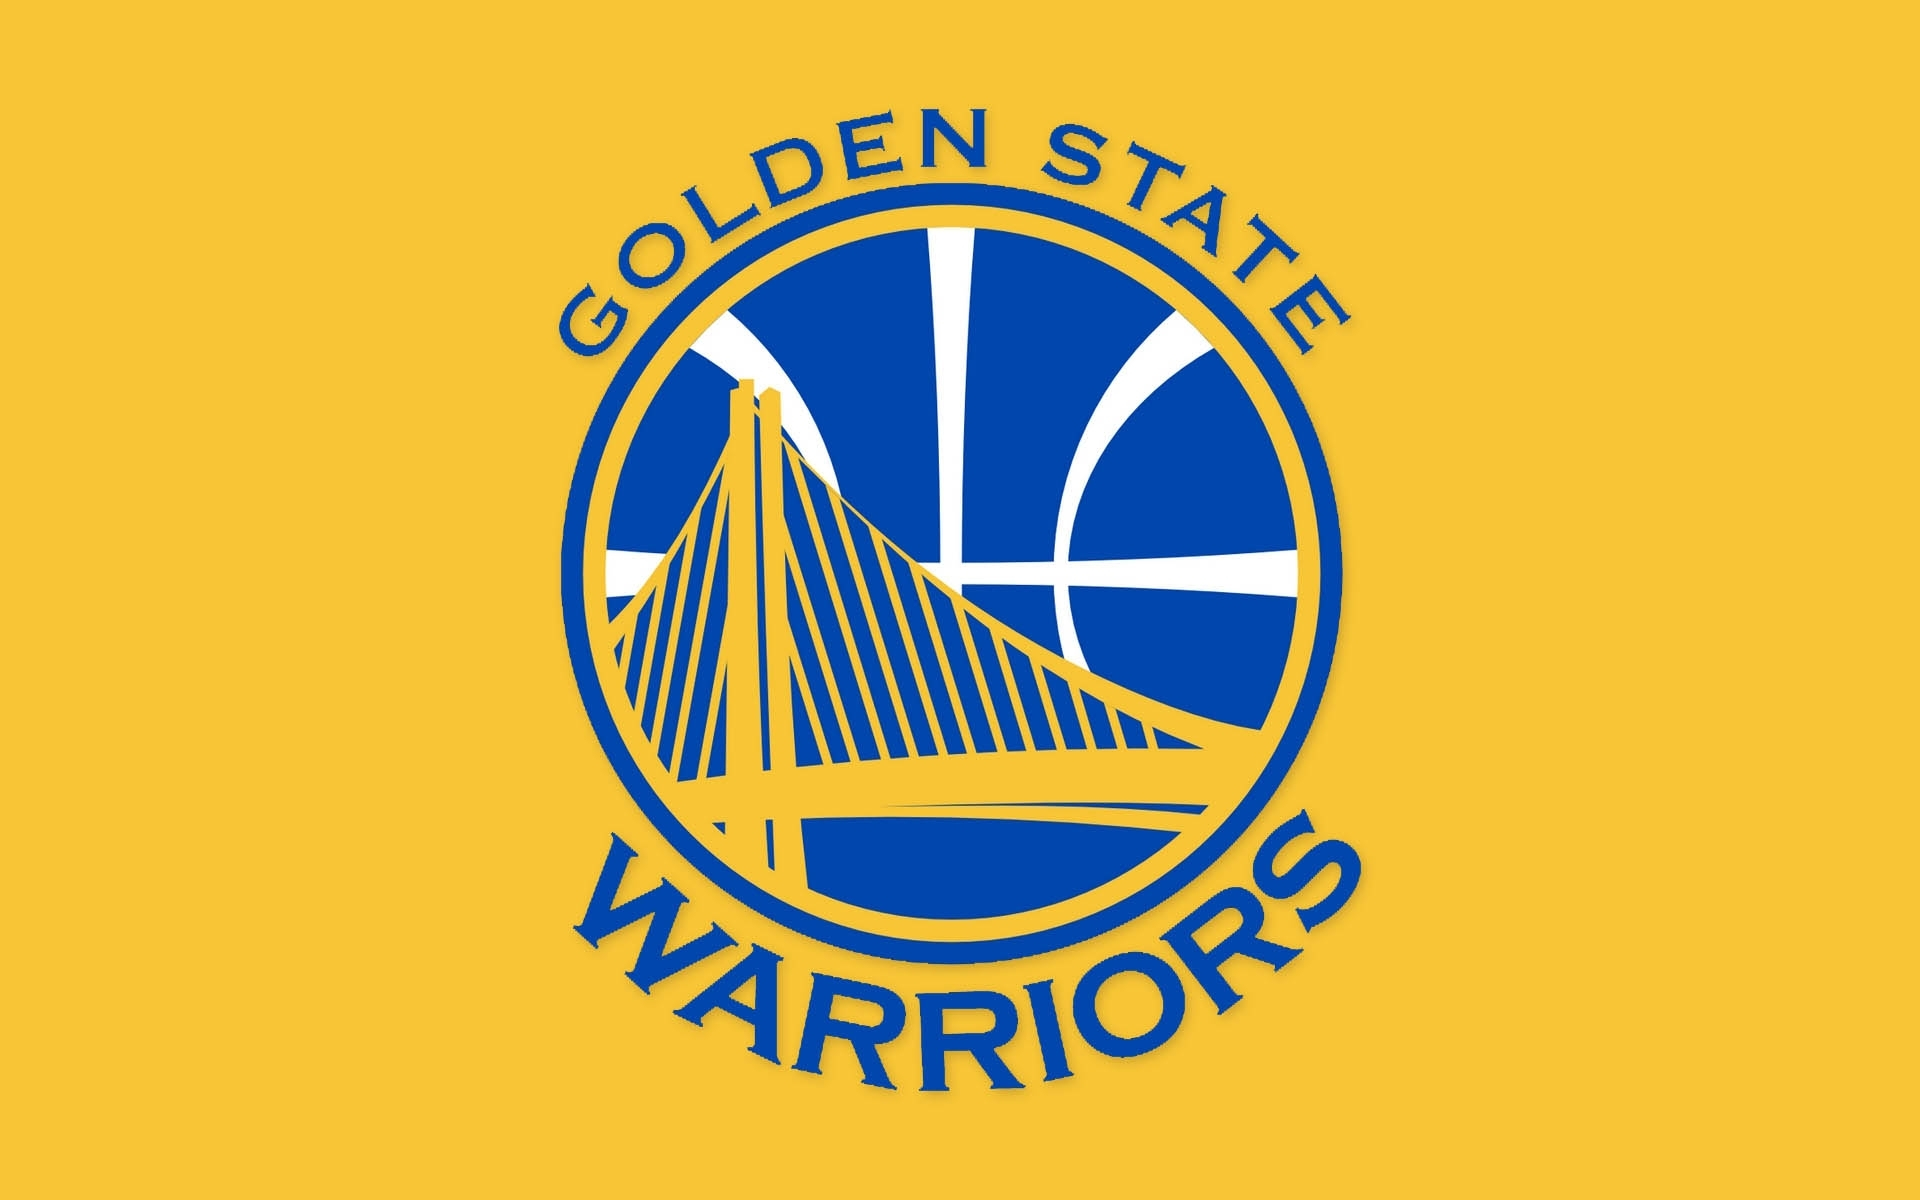 golden state warriors wallpapers hd | pixelstalk